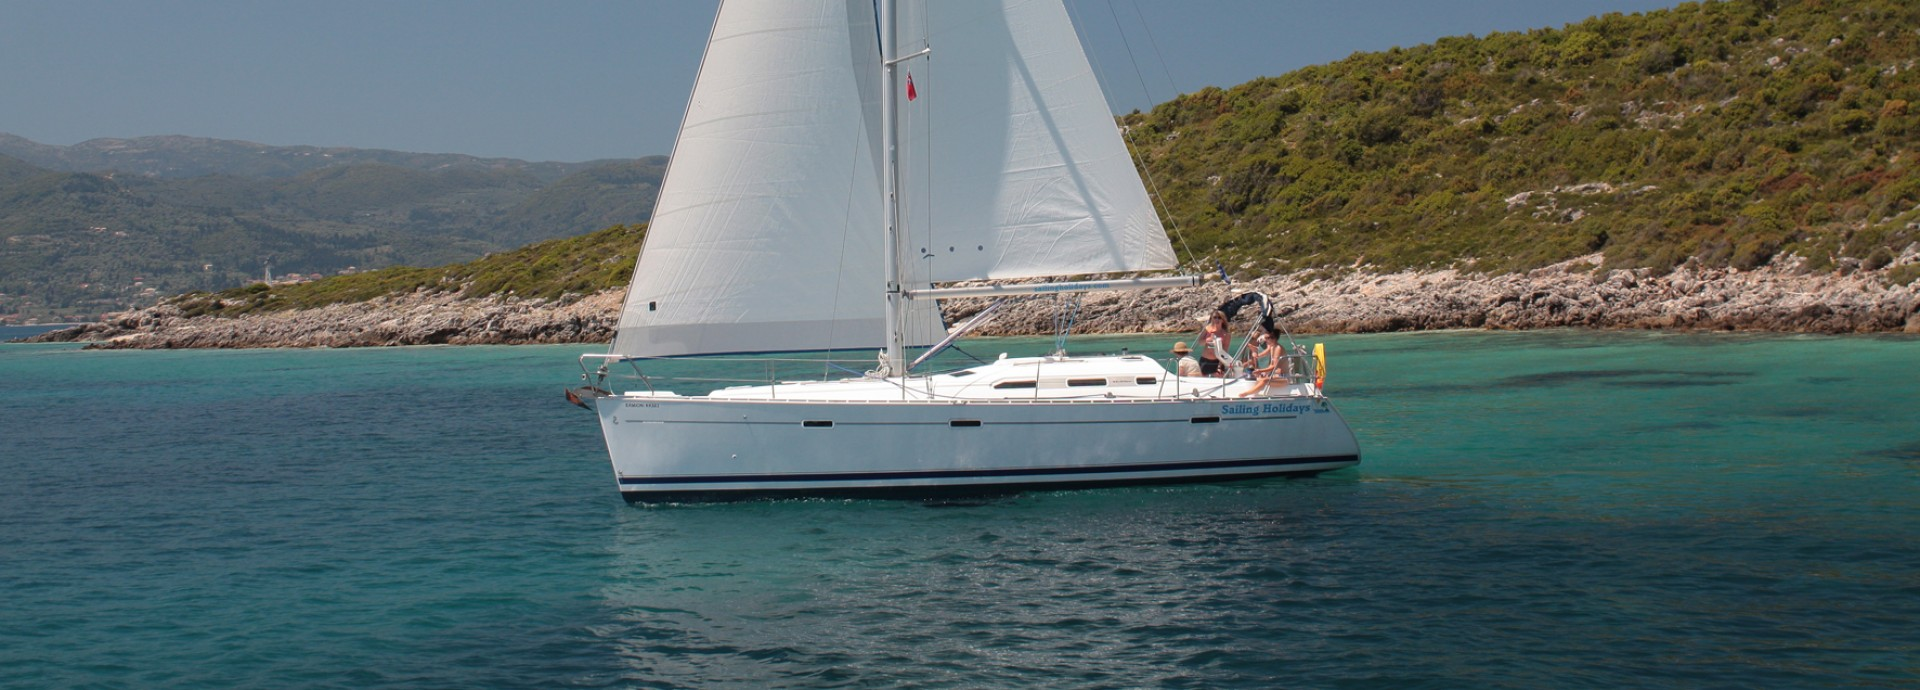 Beneteau 393 Sailing past Greek Mainland 2